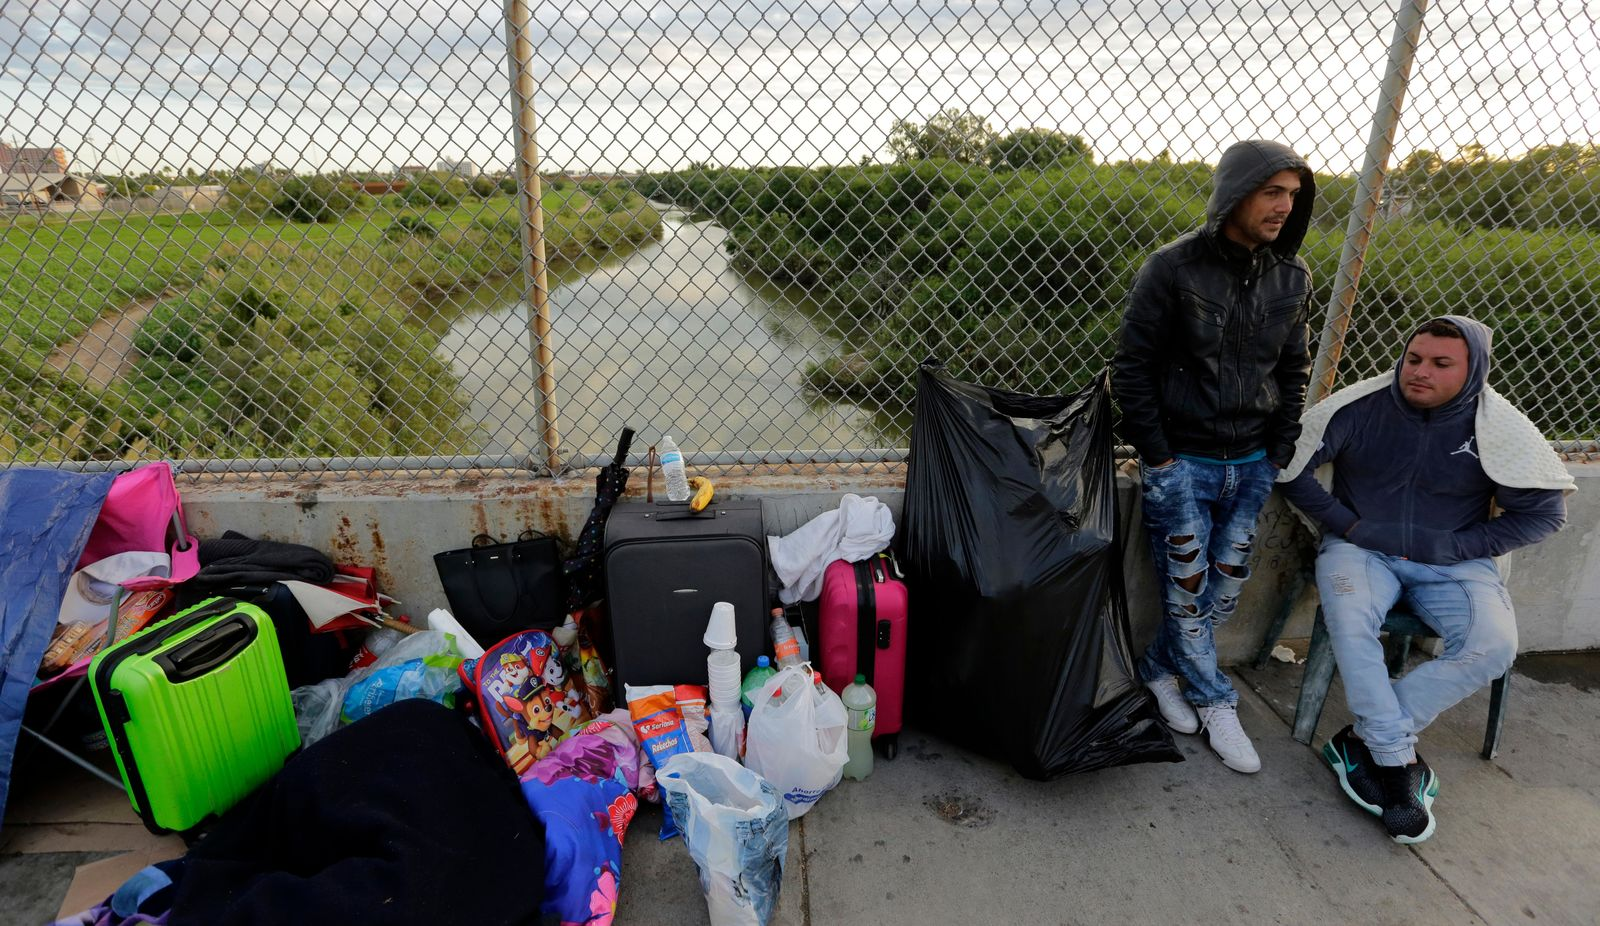 FILE - In this Nov. 2, 2018, file photo, Yenly Morales,left, and Yenly Herrera, right, immigrants from Cuba seeking asylum in the United States, wait on the Brownsville and Matamoros International Bridge in Matamoros, Mexico.{ } (AP Photo/Eric Gay, File)